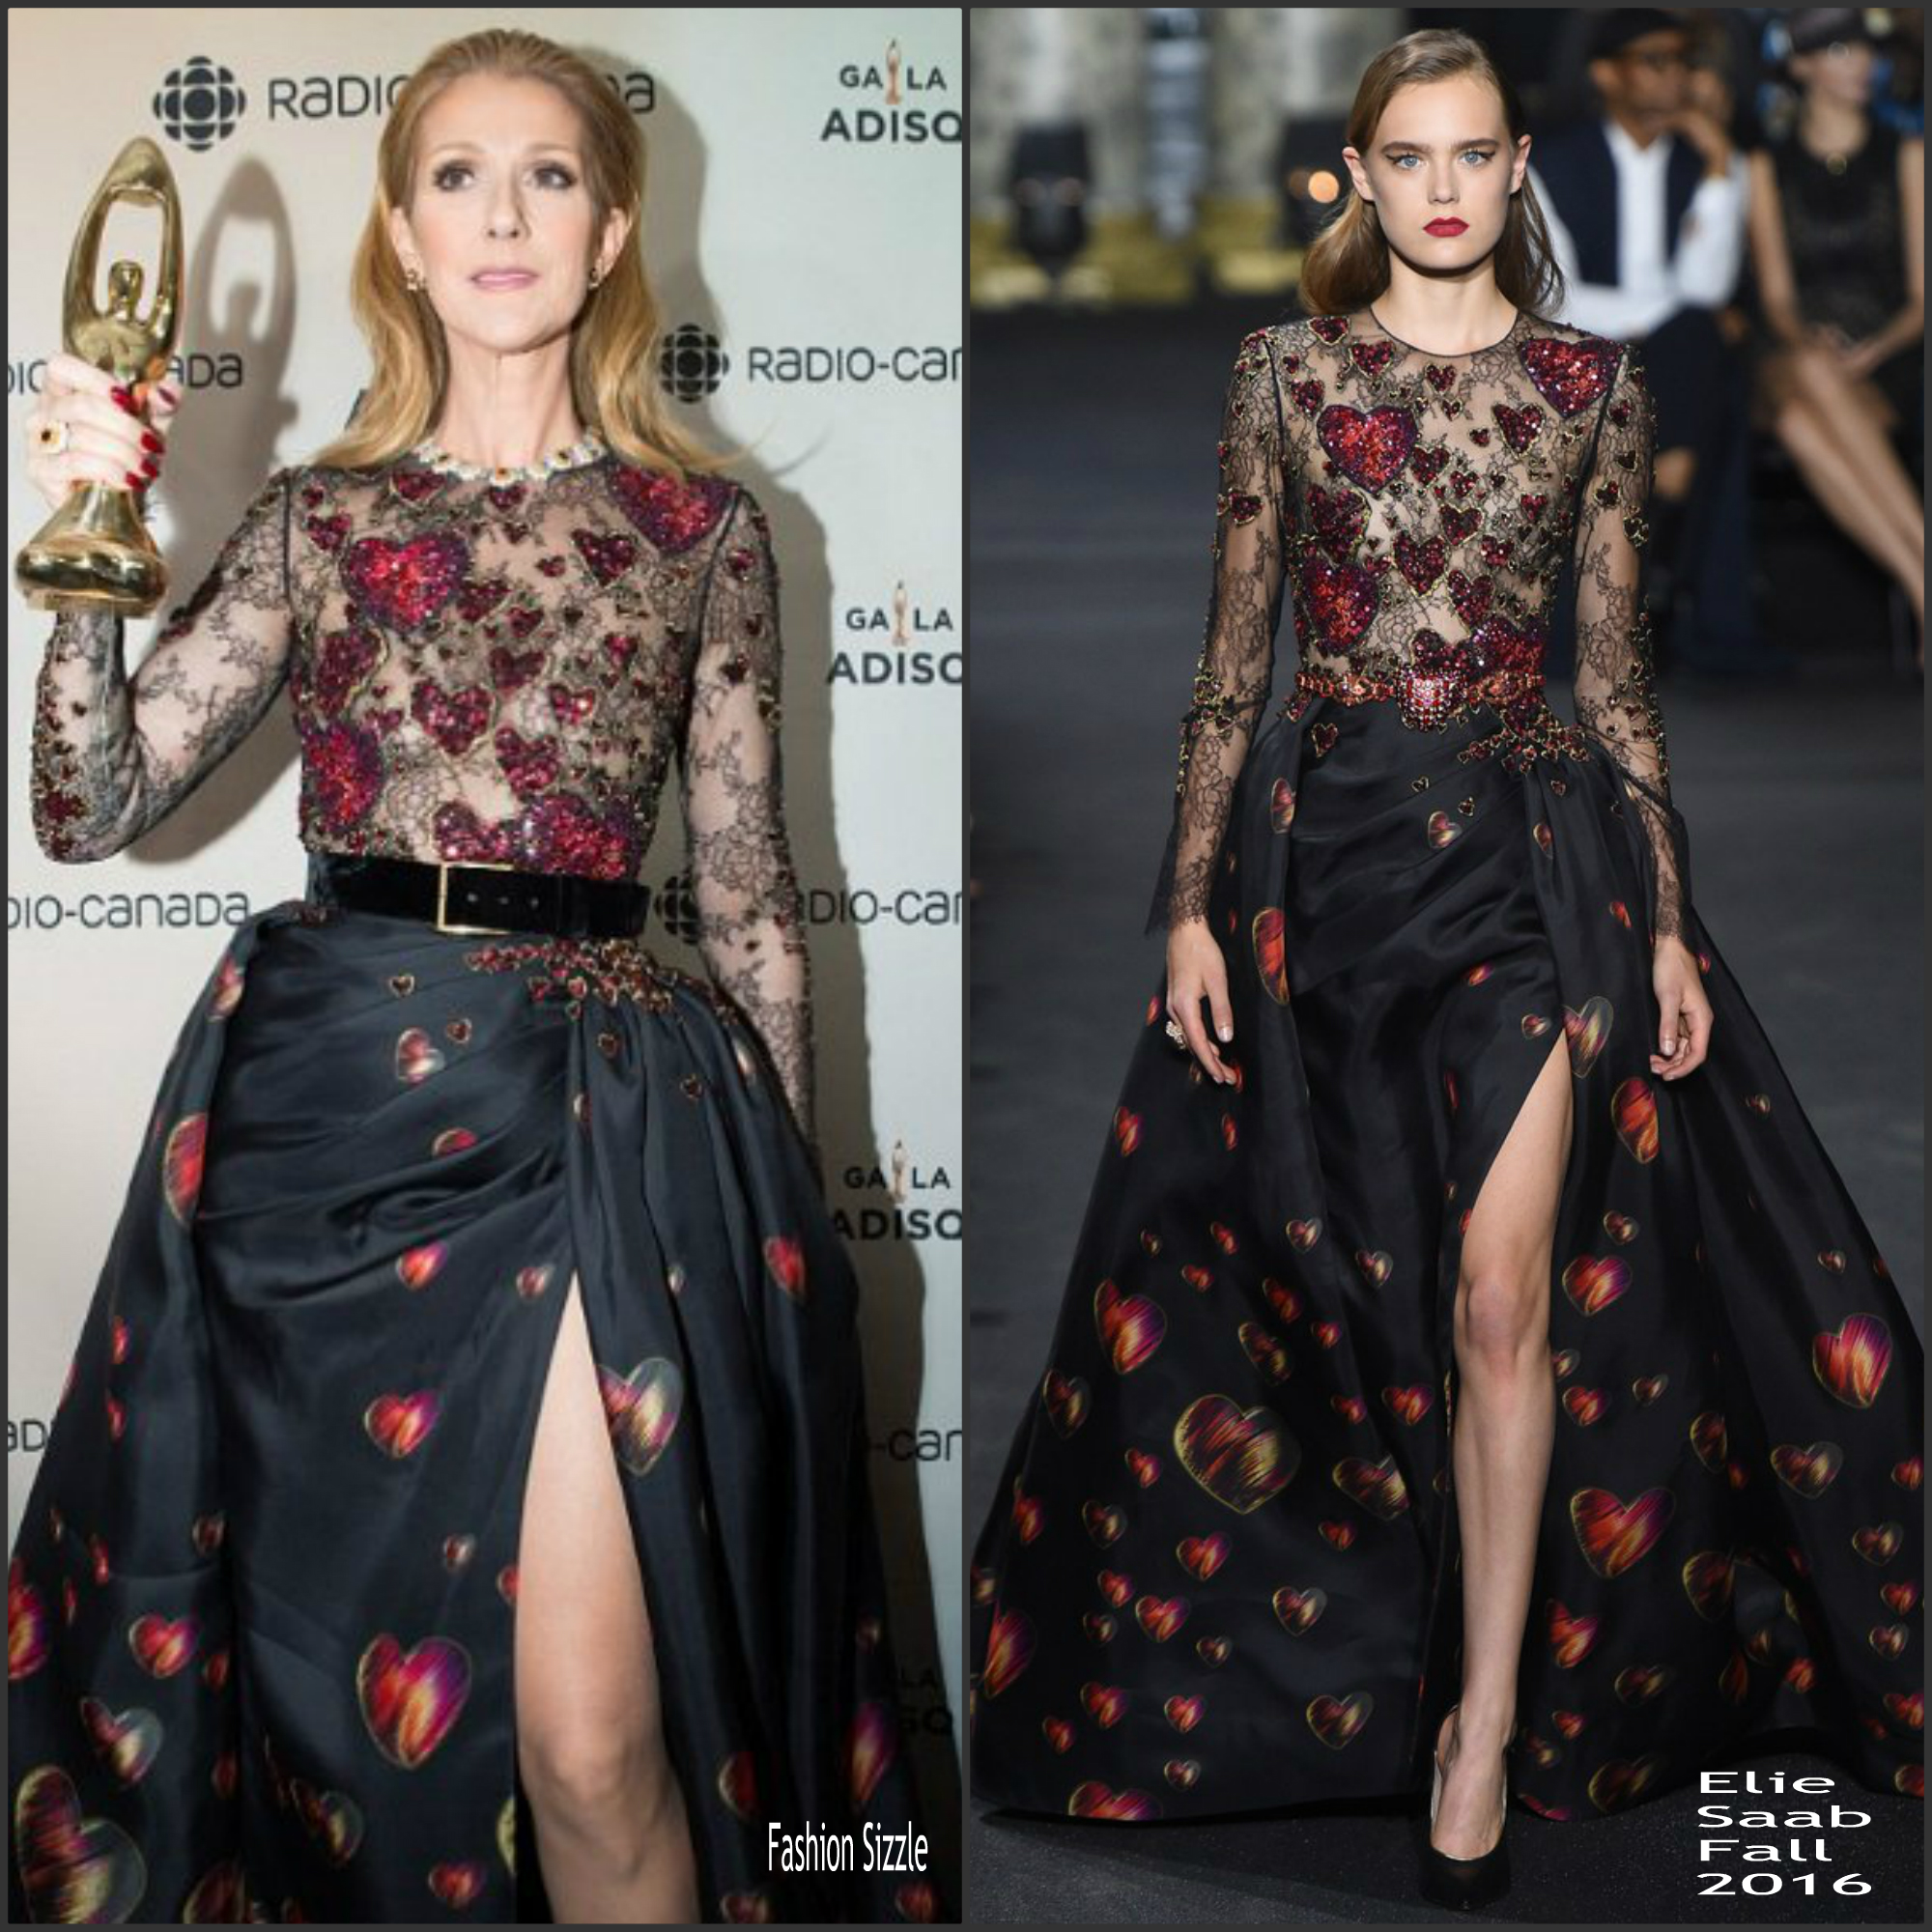 celine-dion-in-elie-saab-at-adisq-2016-gala